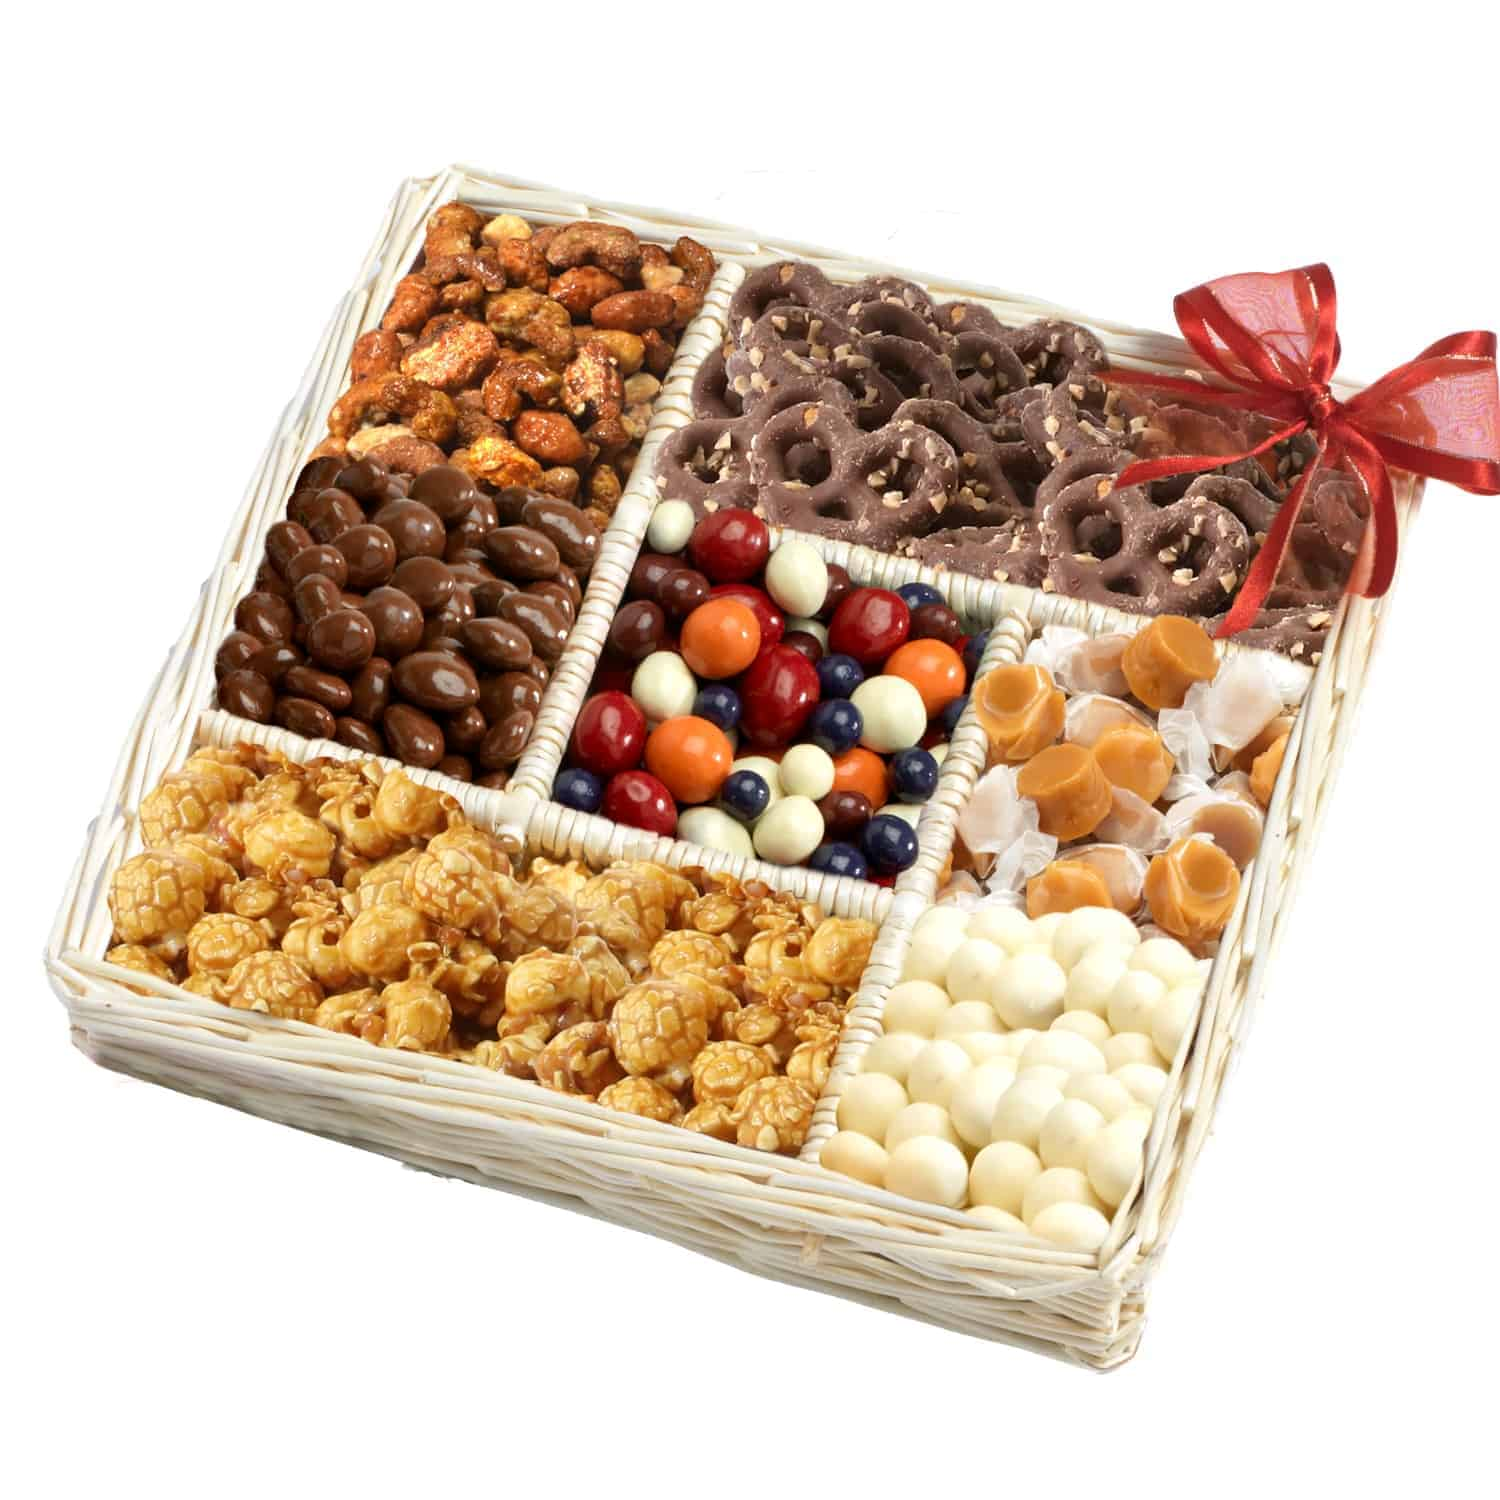 Gourmet Holiday Gift | Chocolate Covered Fruit and Nuts